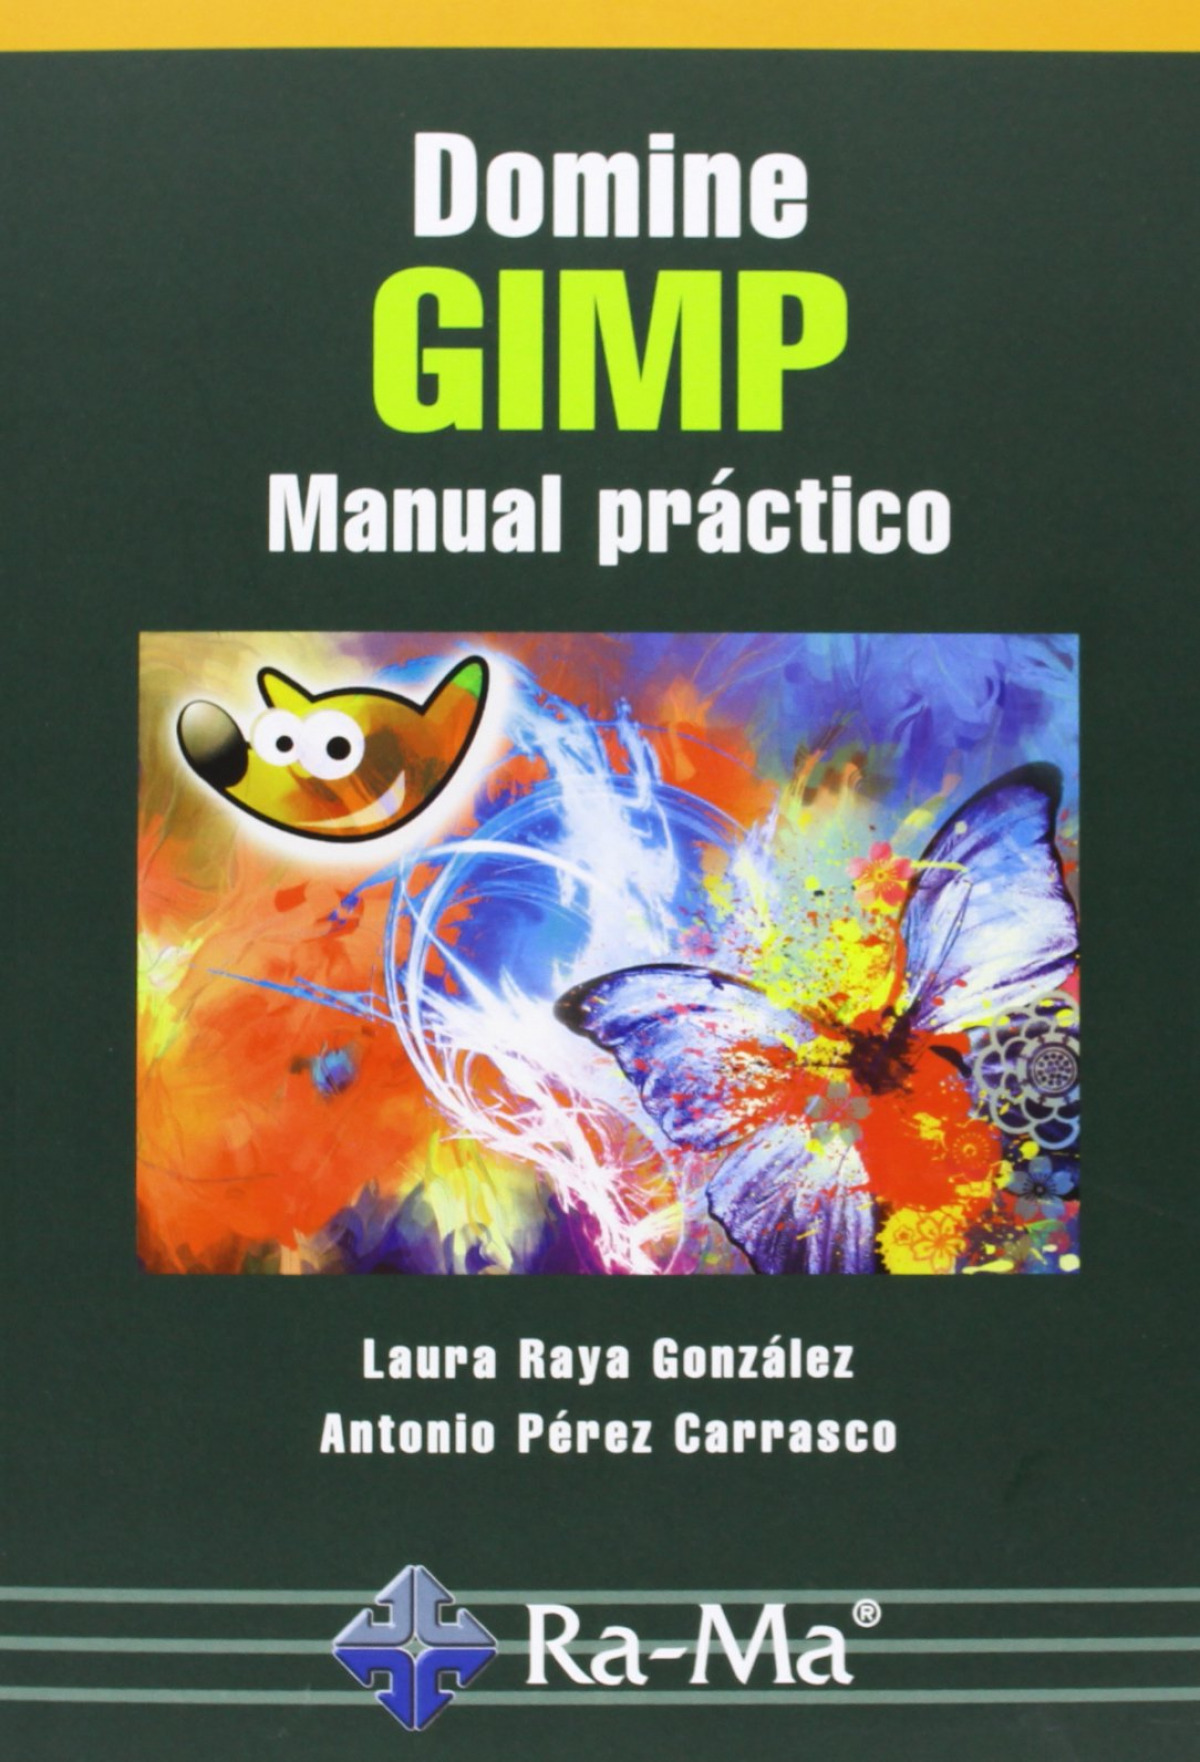 DOMINE GIMP: MANUAL PRACTICO 9788499642314